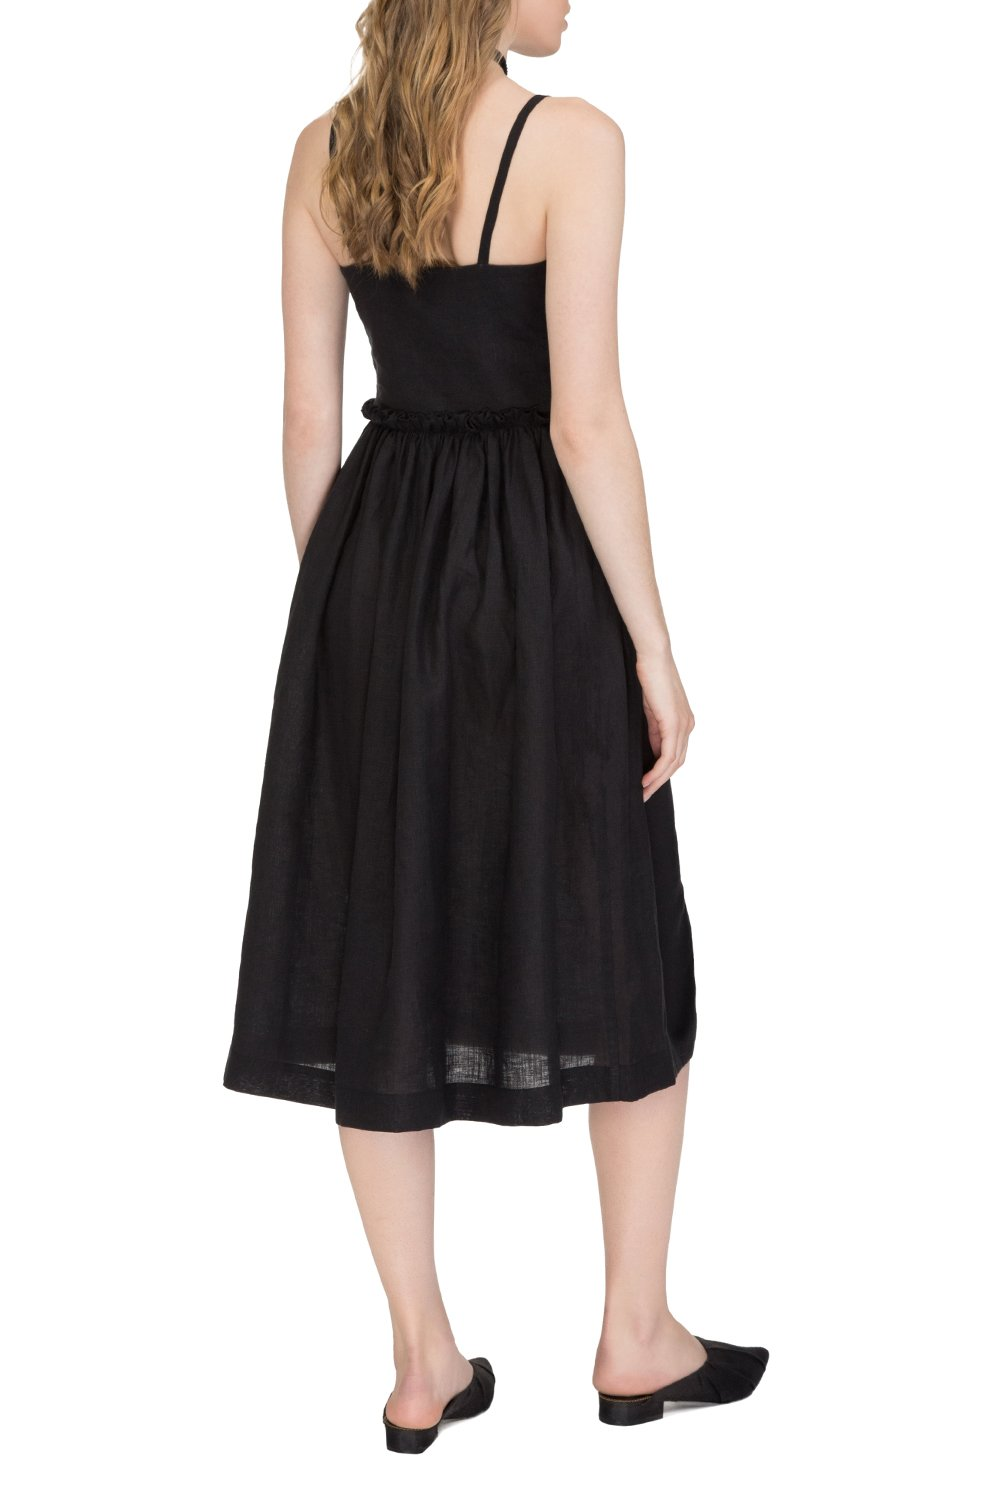 Dark night midi dress